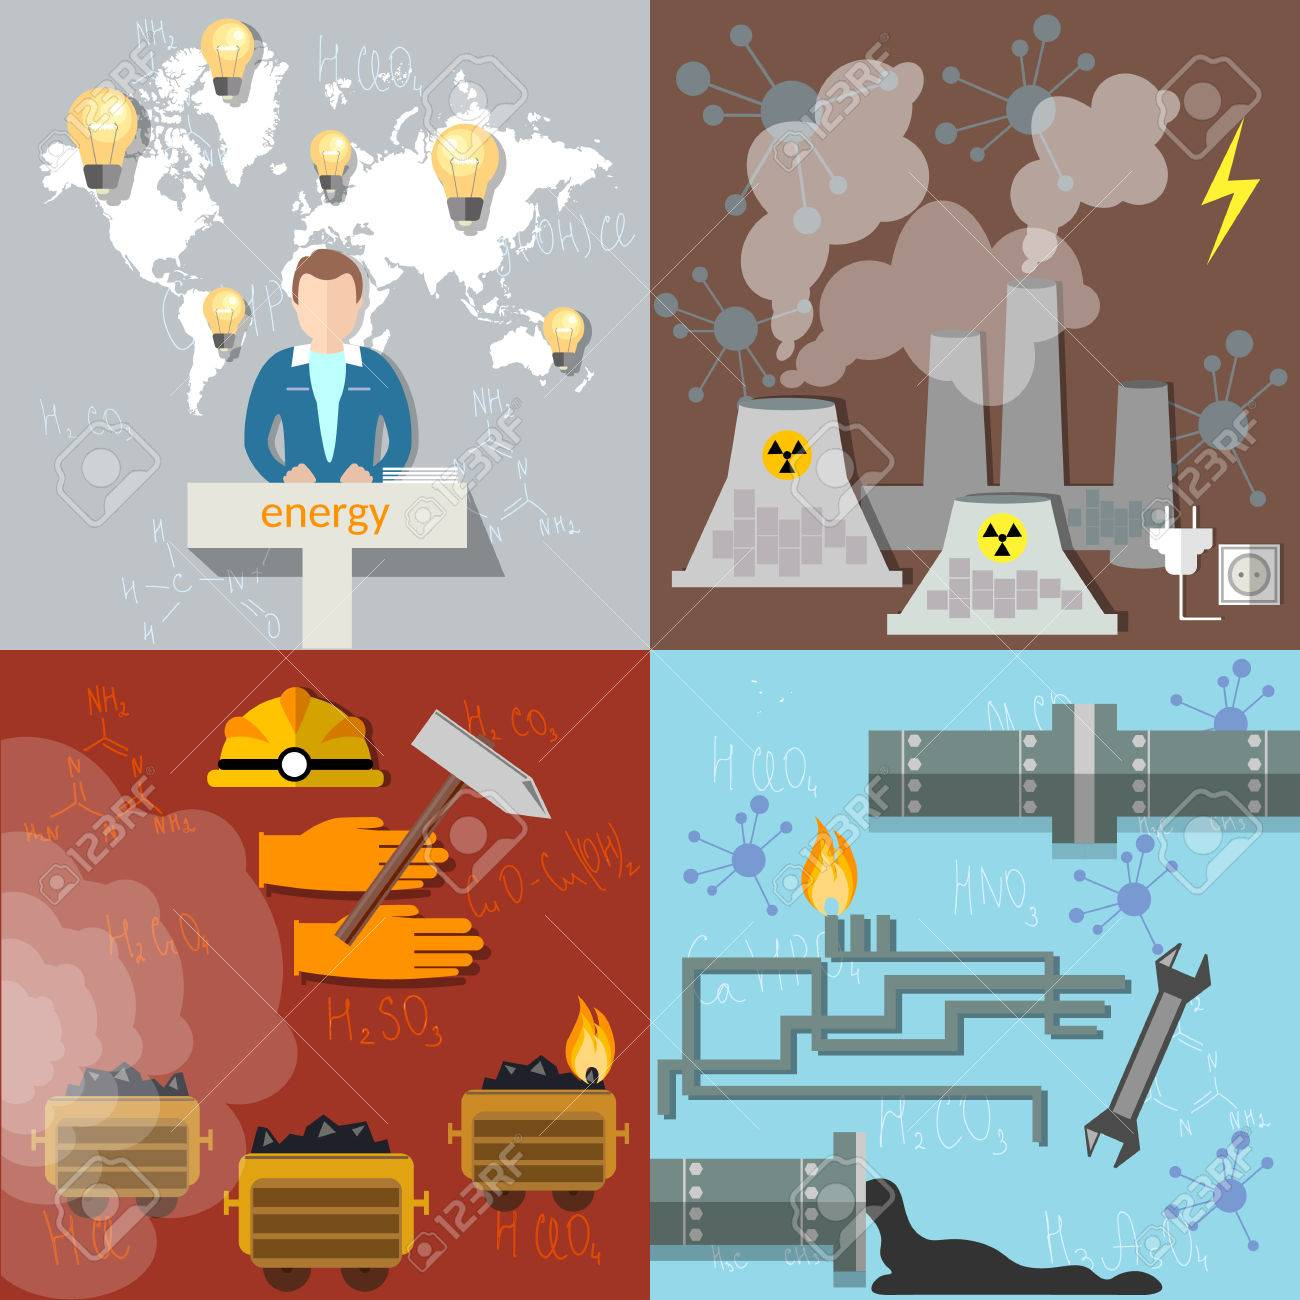 Mining pollution in clipart